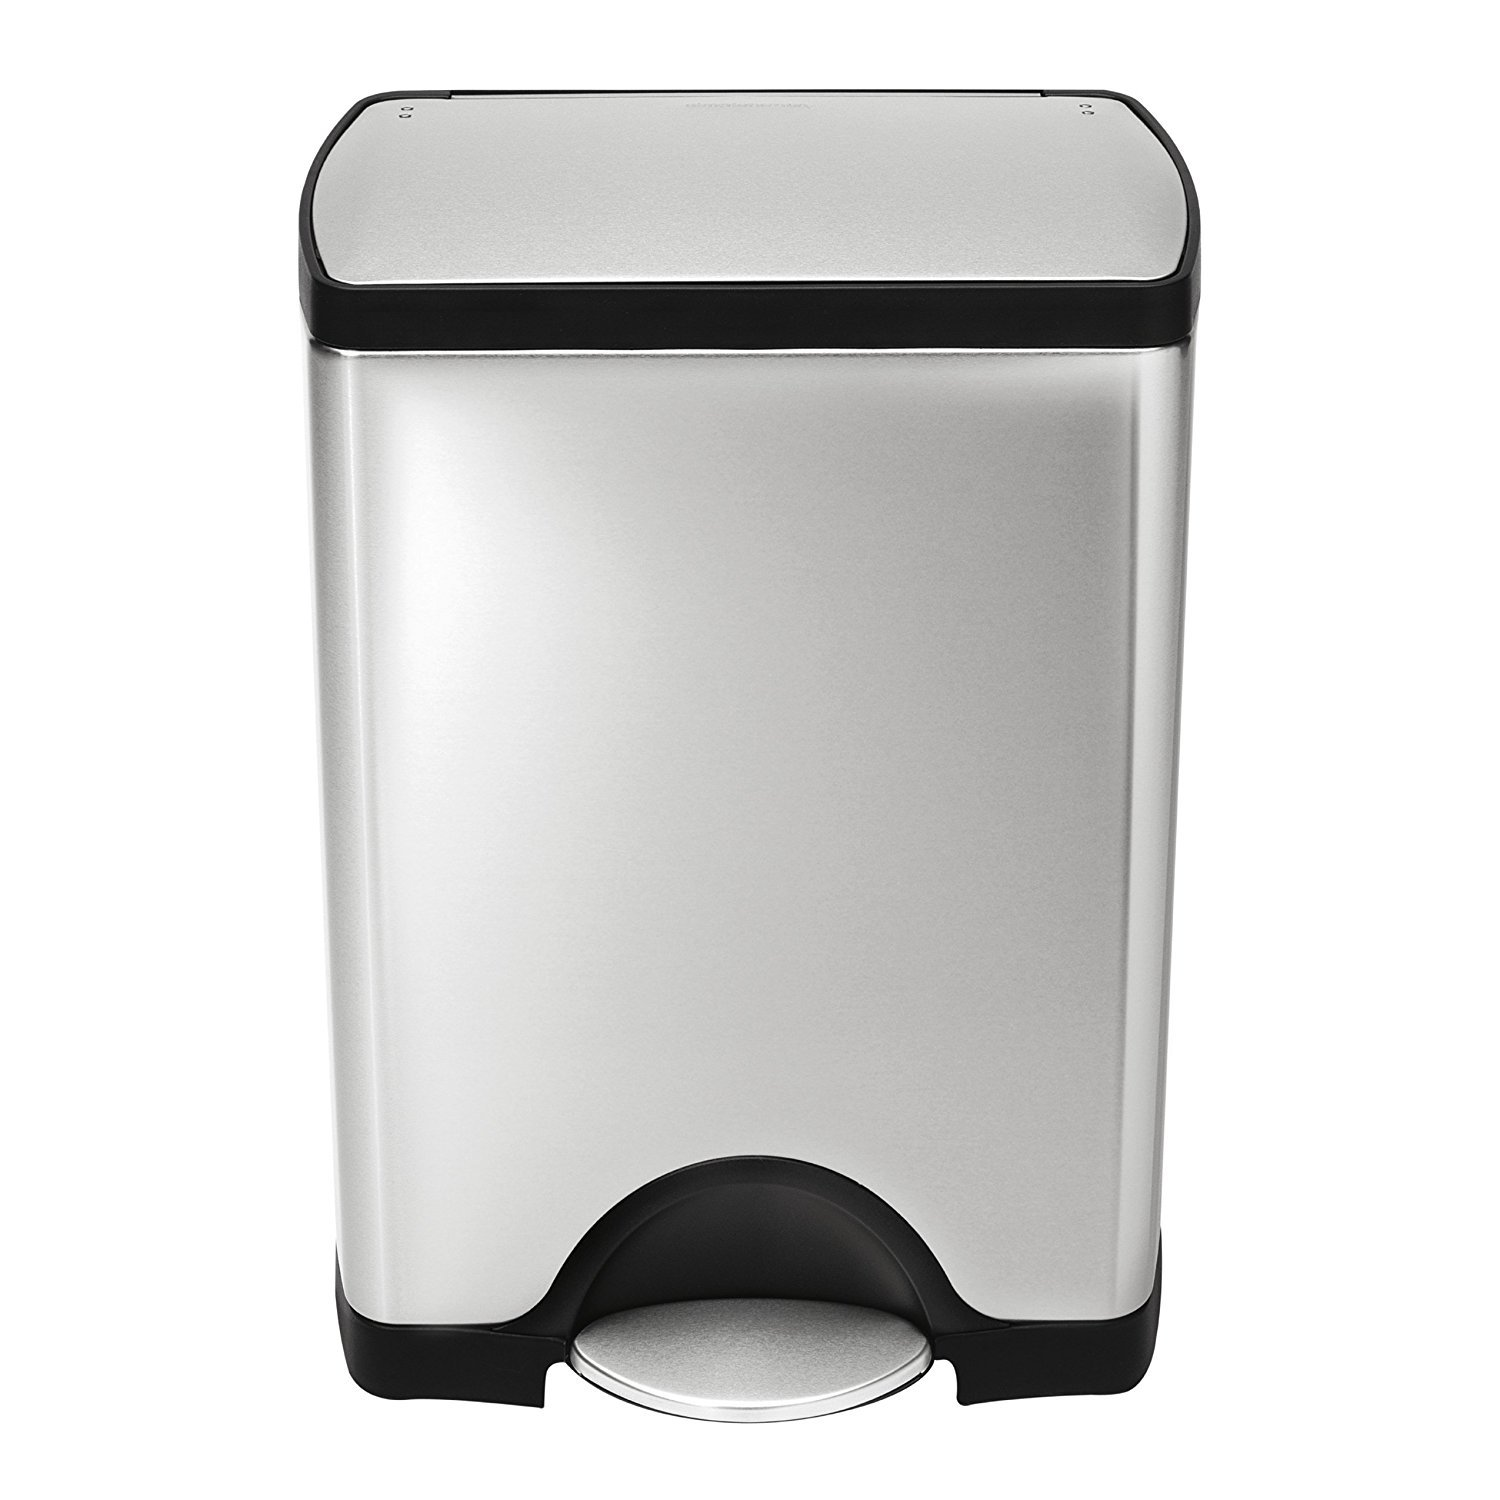 simplehuman 30 Liter / 8 Gallon Stainless Steel Rectangular Kitchen Step Trash Can, Brushed Stainless Steel by simplehuman